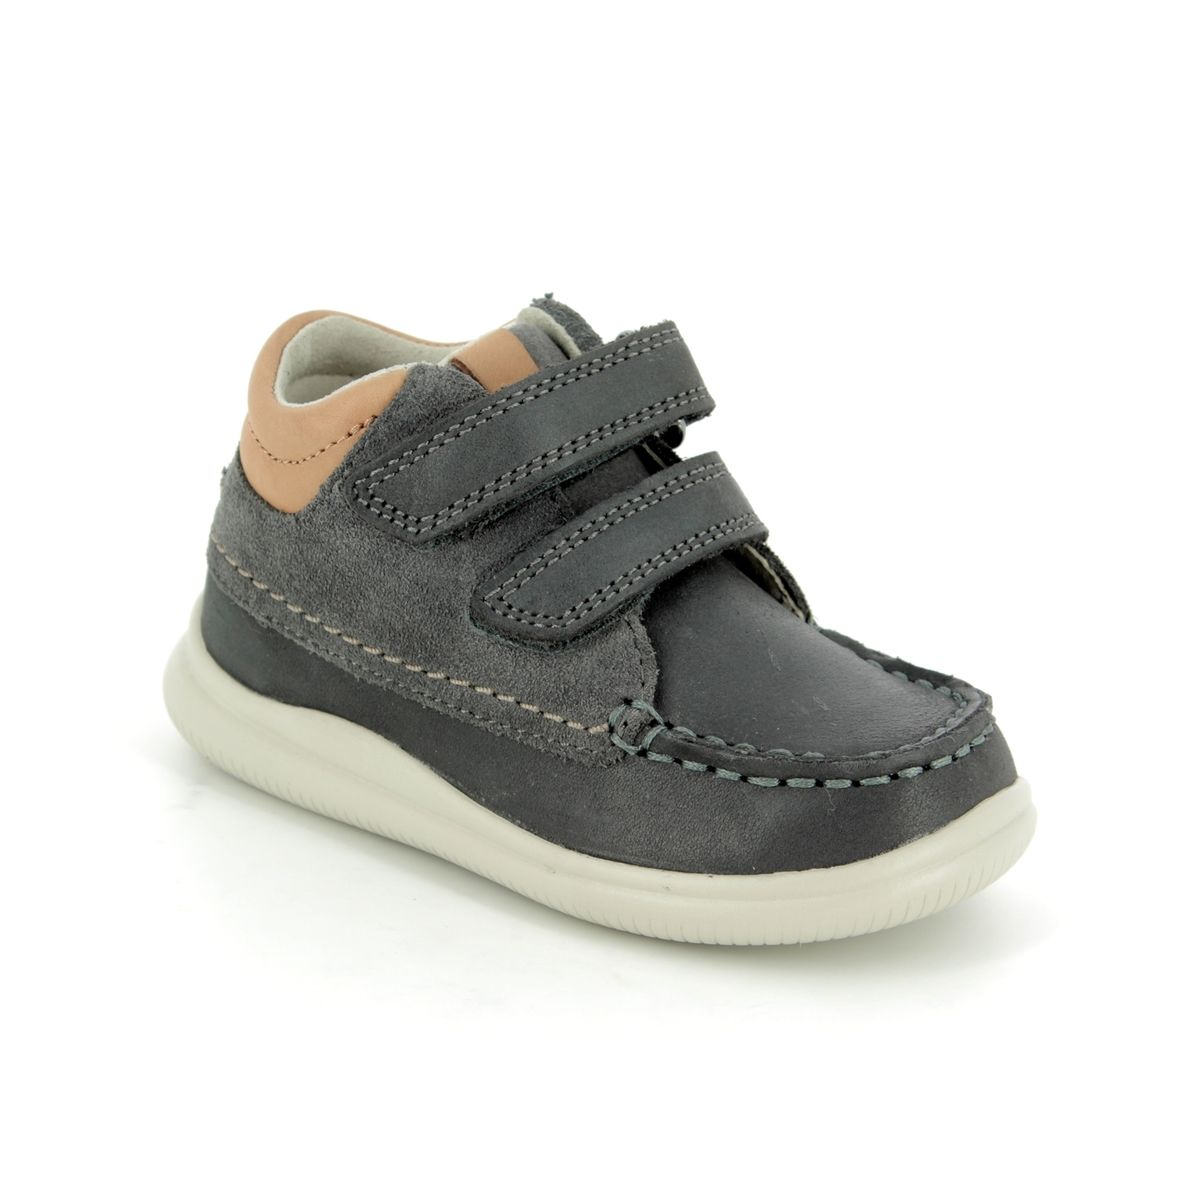 96fa76230f0b Clarks First Shoes - Grey matt leather - 3501 56F CLOUD TUKTU